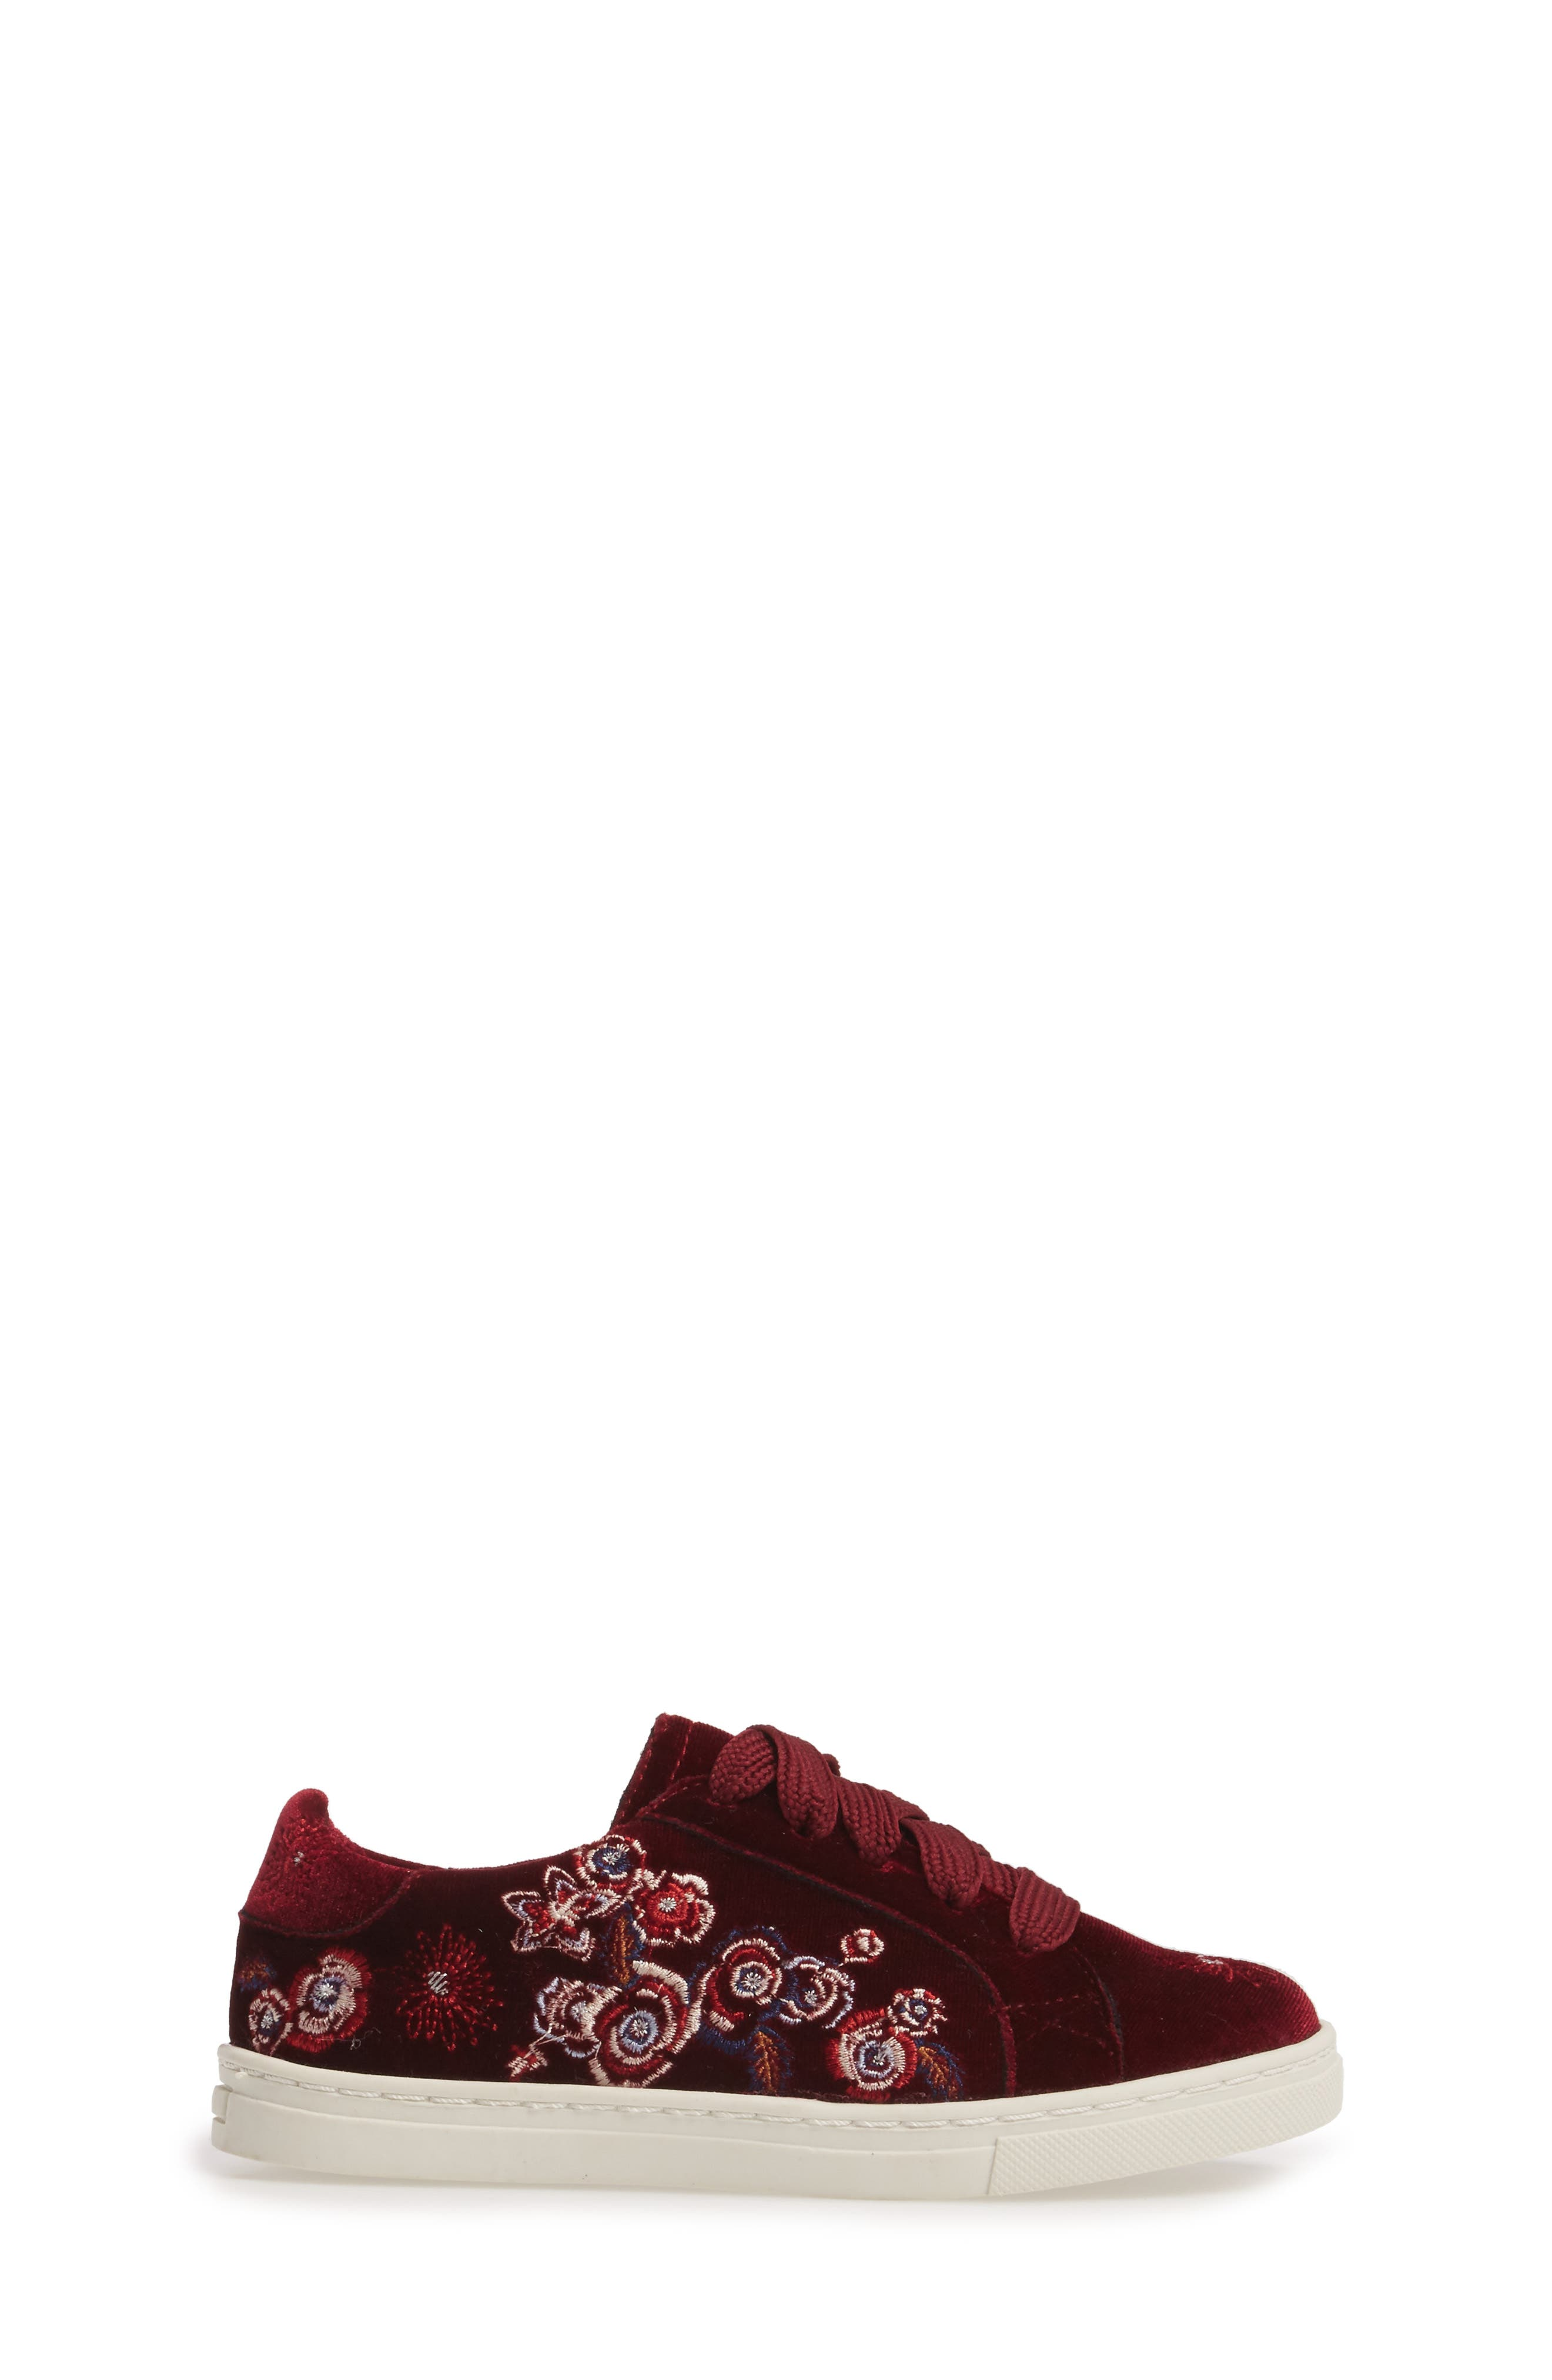 Zolly Floral Embroidered Sneaker,                             Alternate thumbnail 3, color,